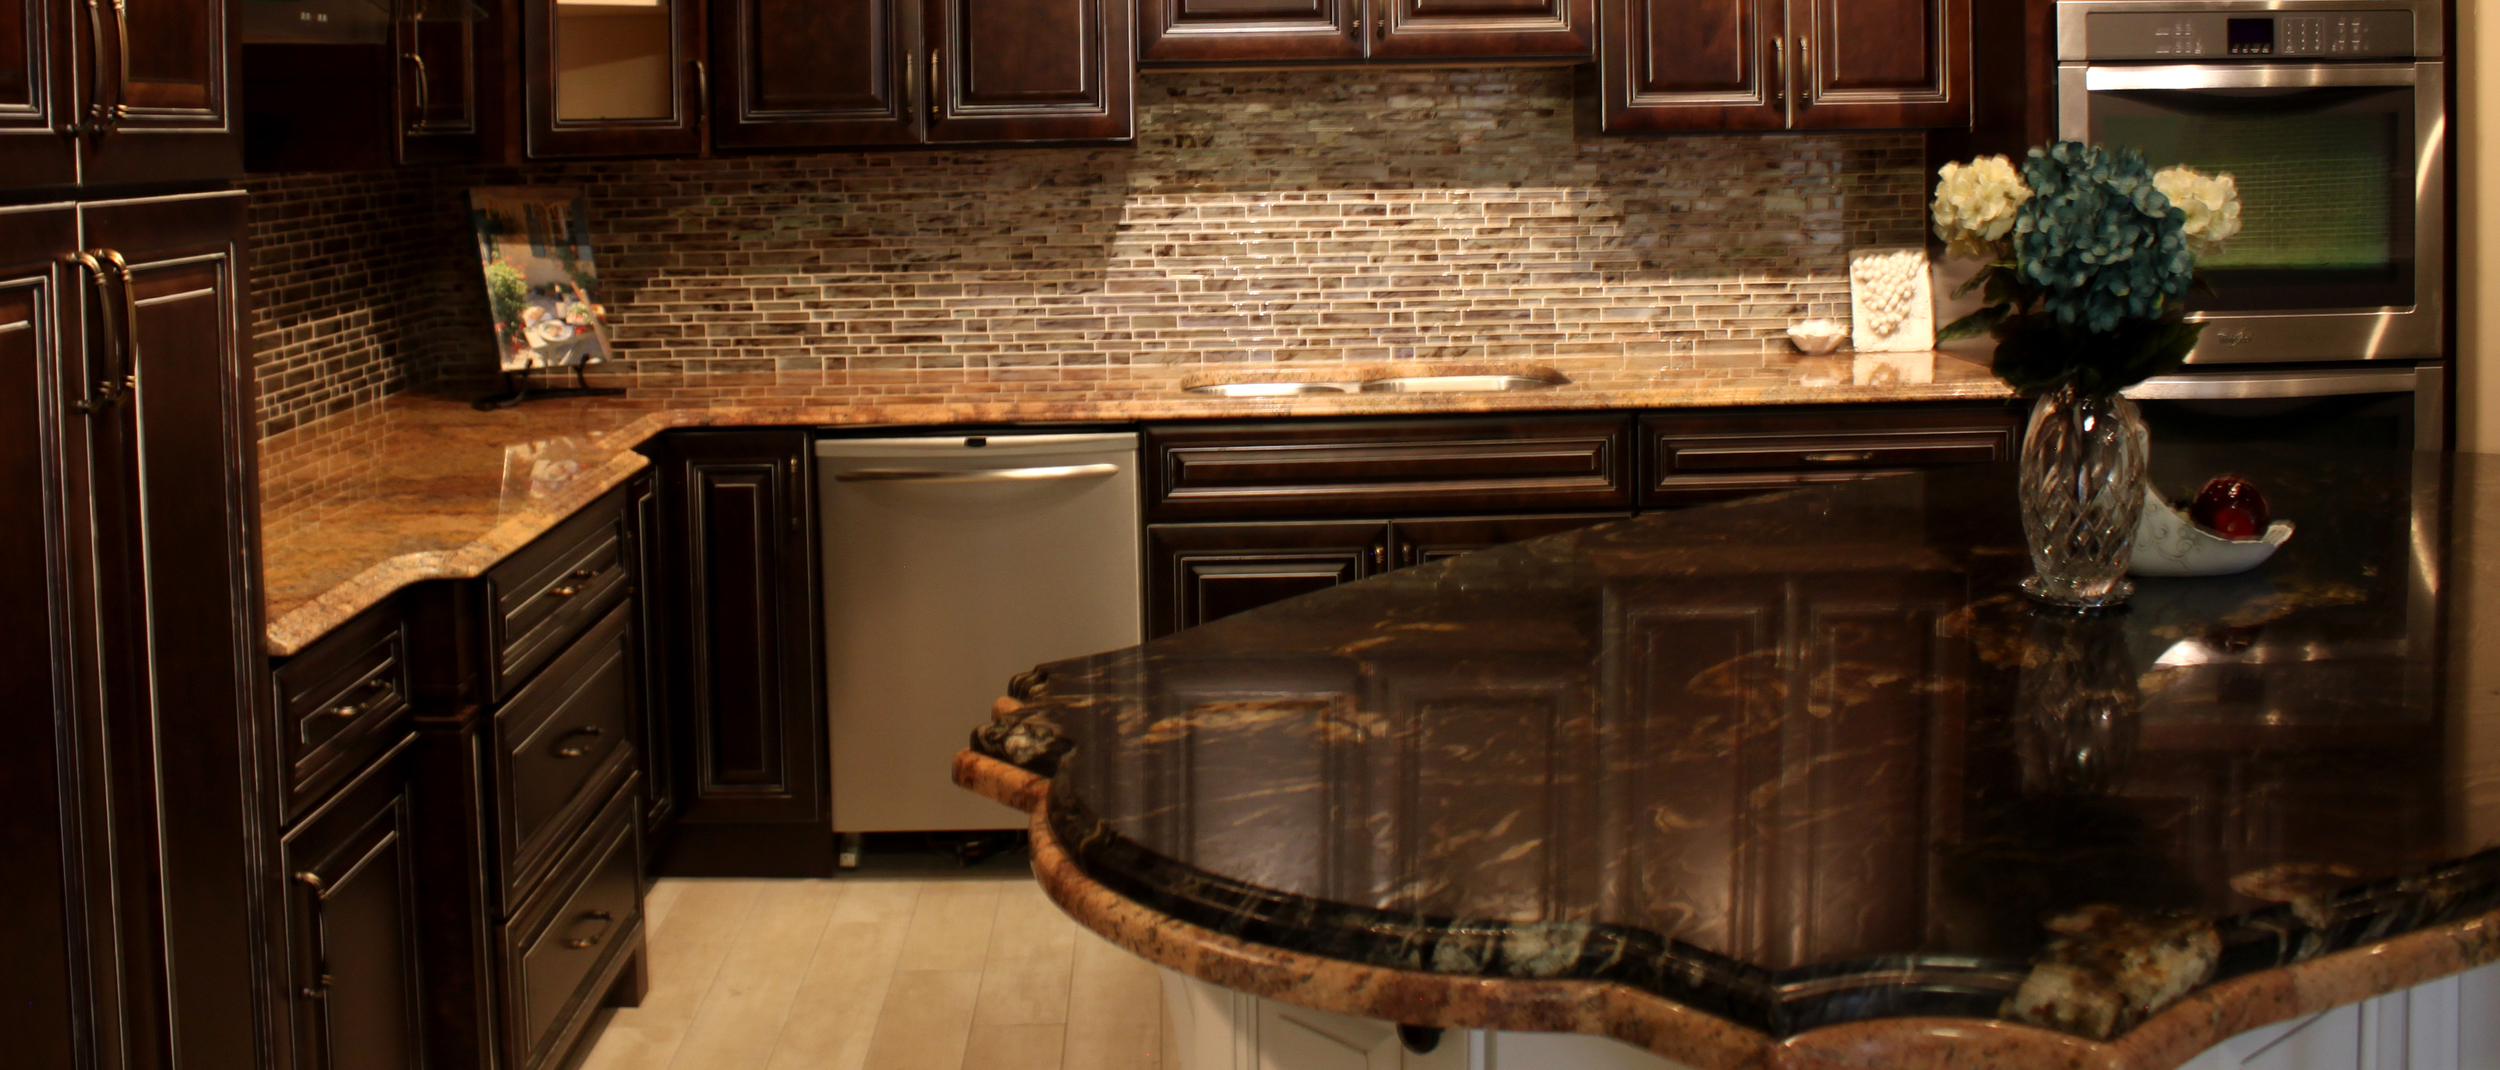 Highland Kitchen Cabinets, Sinks and Countertops — Rock Counter